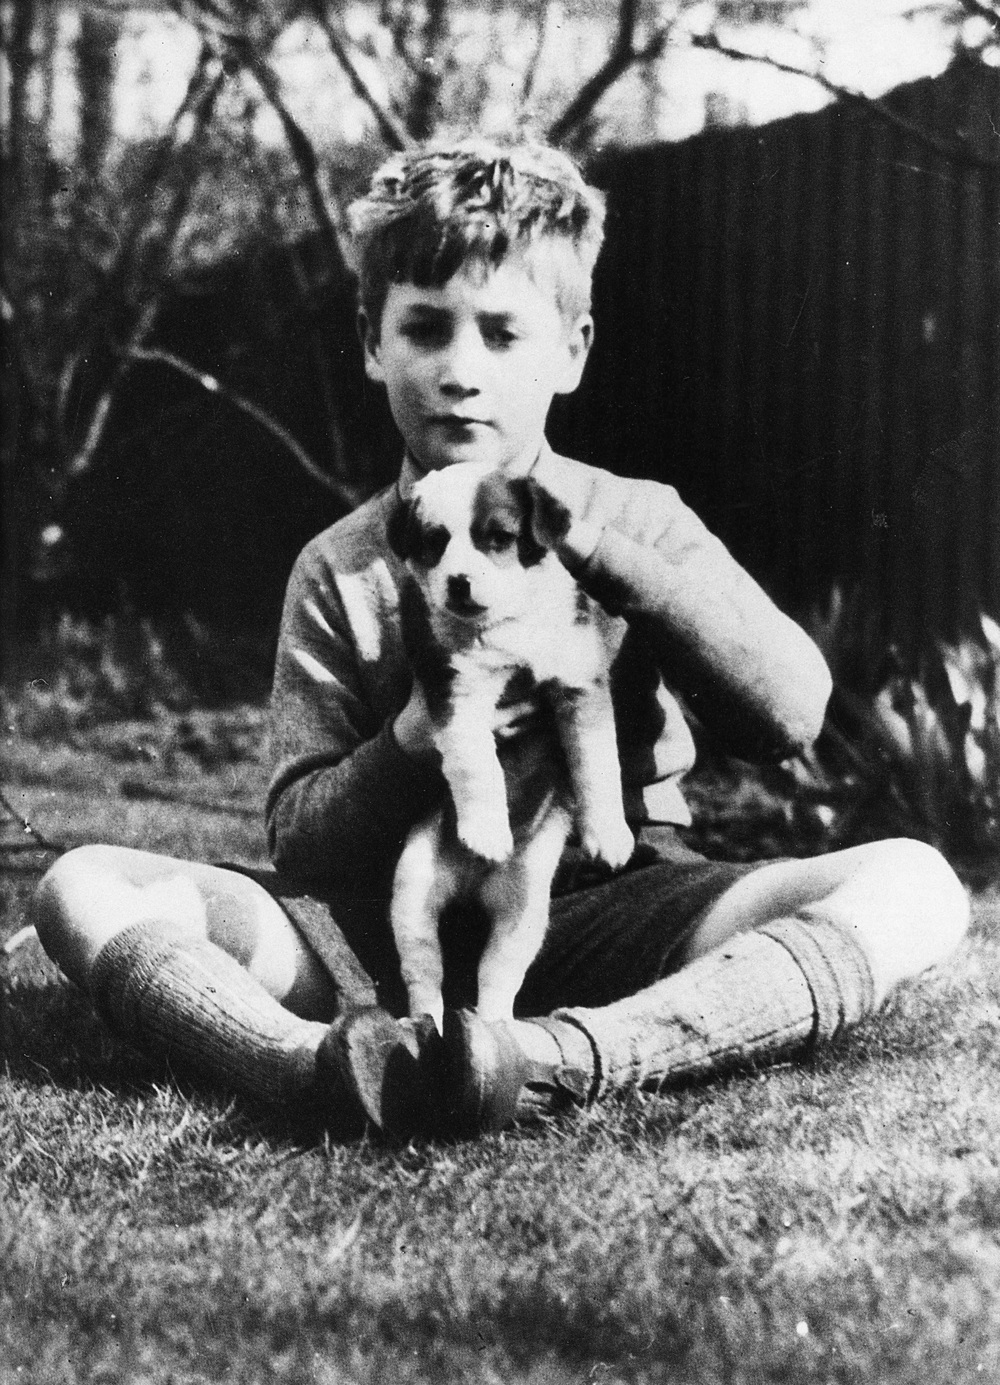 Young John Lennon with his dog.